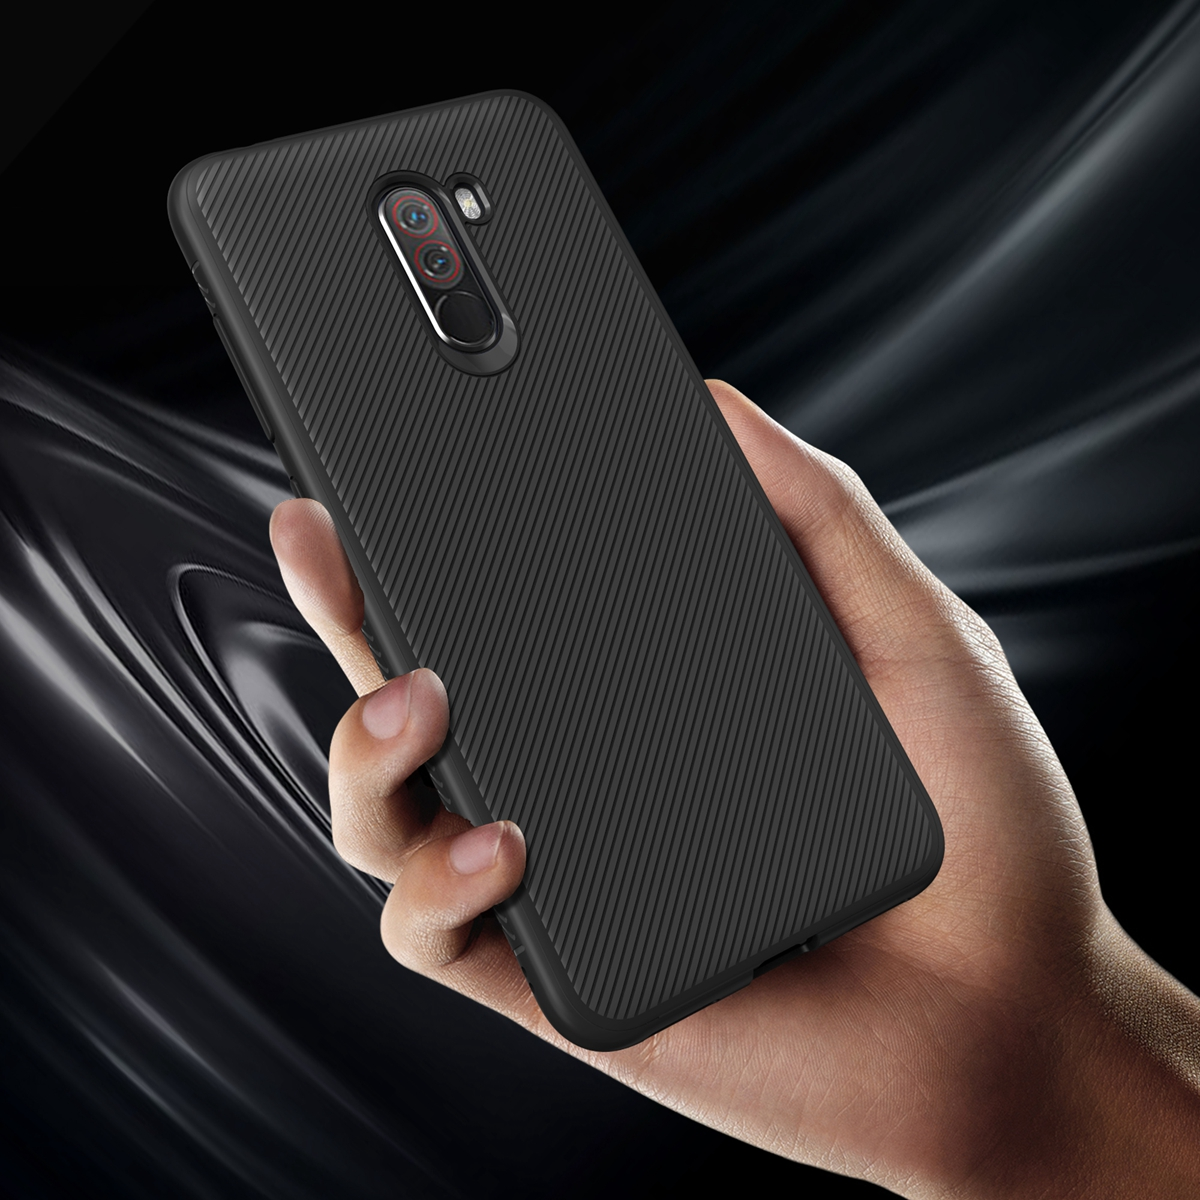 For Xiaomi Pocophone F1 Case Soft Silicone TPU Back Cover Case for Xiaomi Pocophone F1 Poco F1 Case Shockproof phone Cover